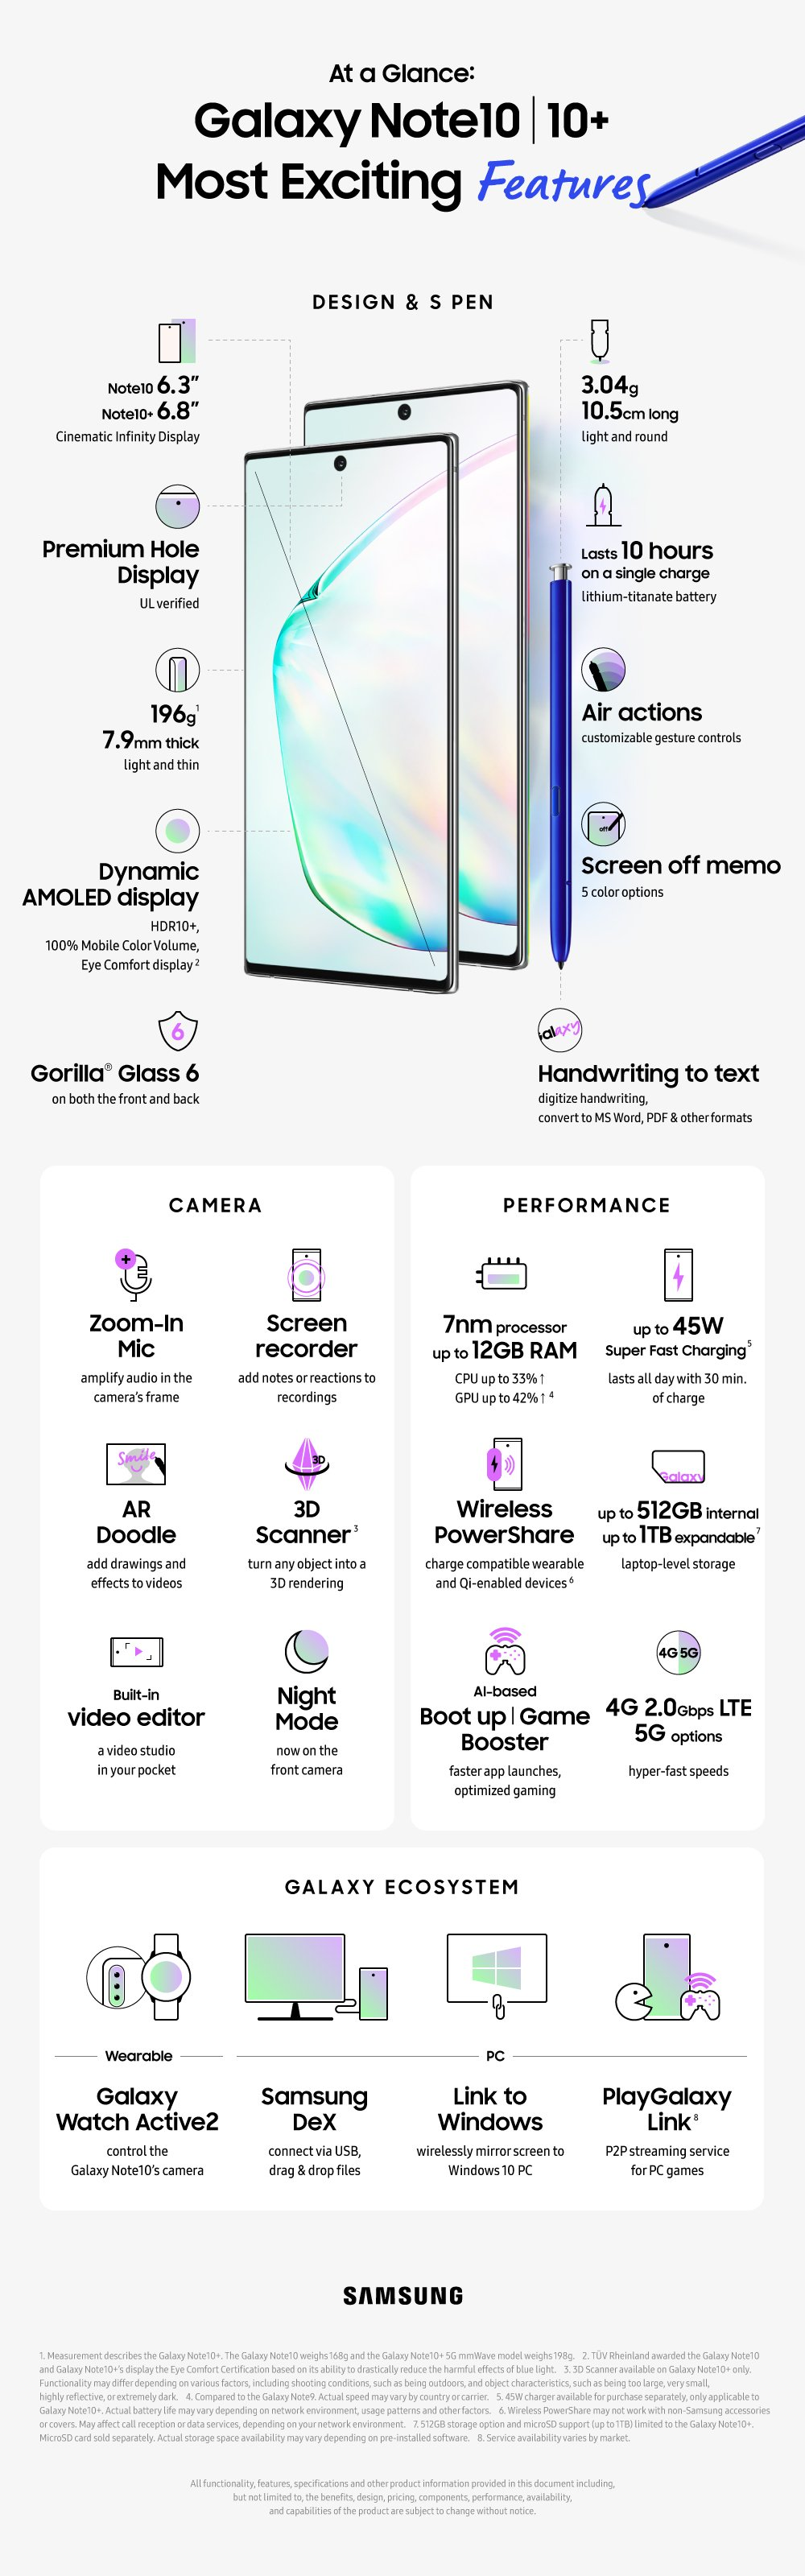 xInfographic_Galaxy-Note10-Most-Exciting-Features.jpg.pagespeed.ic.0i_hZJusB_